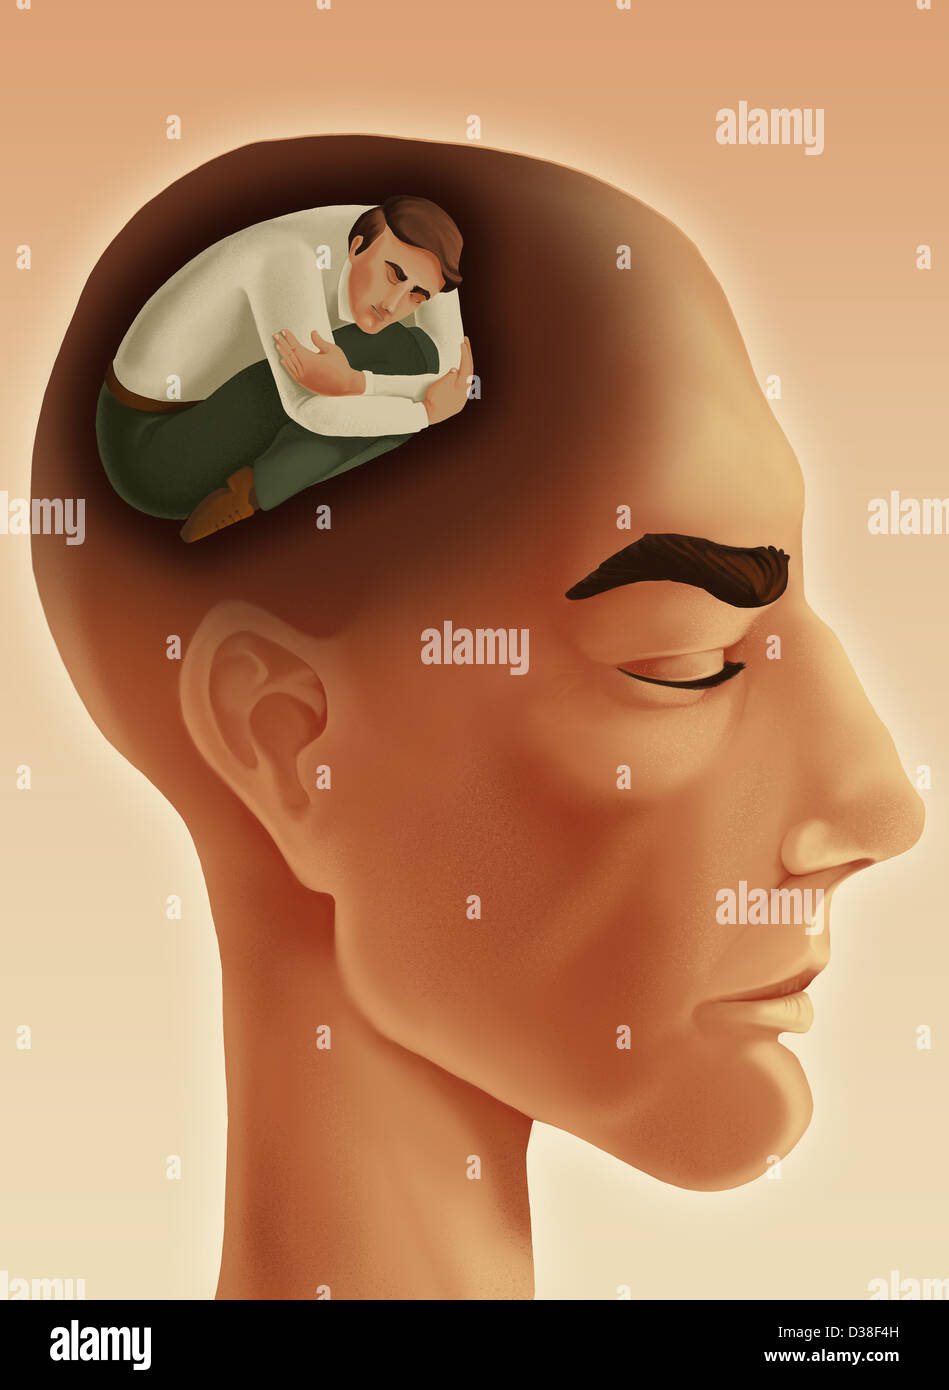 Illustrative image of thoughtful man with eyes closed representing introvert personality Stock Photo